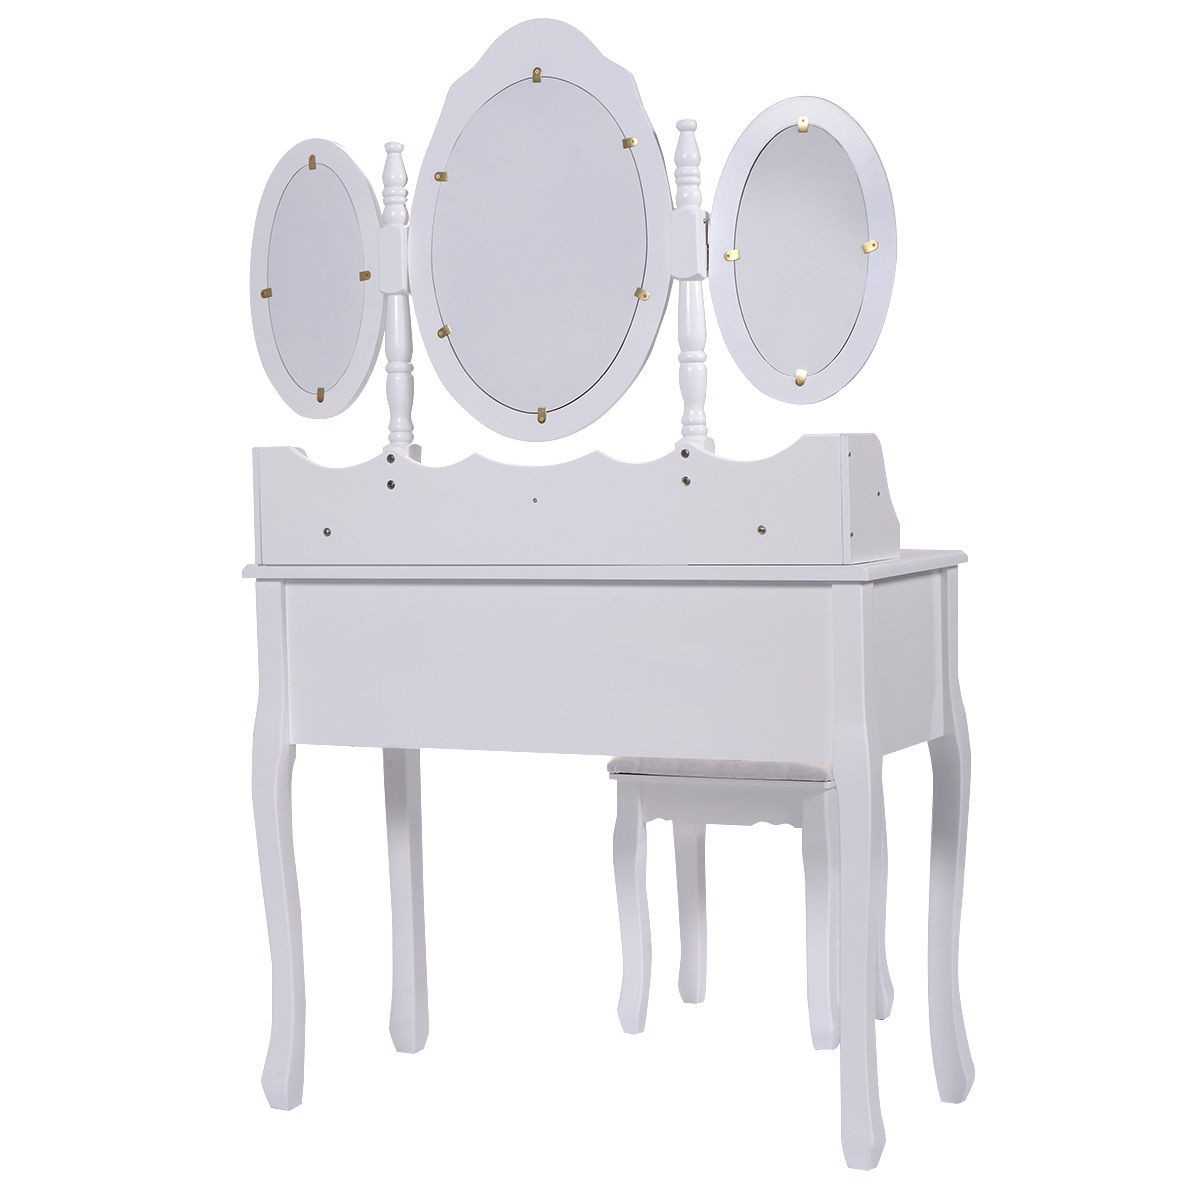 vanity makeup dressing table set wood desk stool 7 drawer